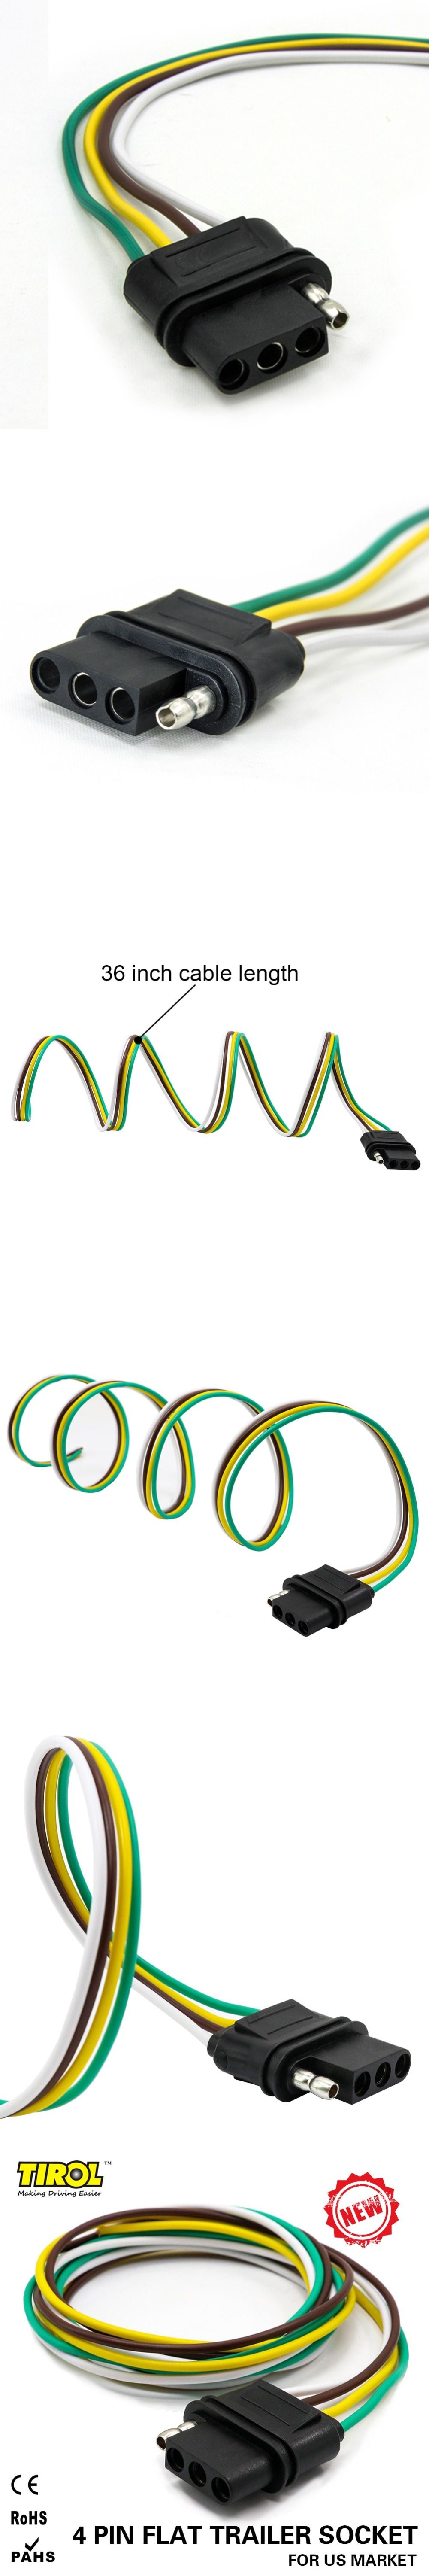 Tirol 5 Way Flat Trailer Wire Harness Extension Connector Plug With 4 Prong Wiring Diagram 36 Inch Cable Length End